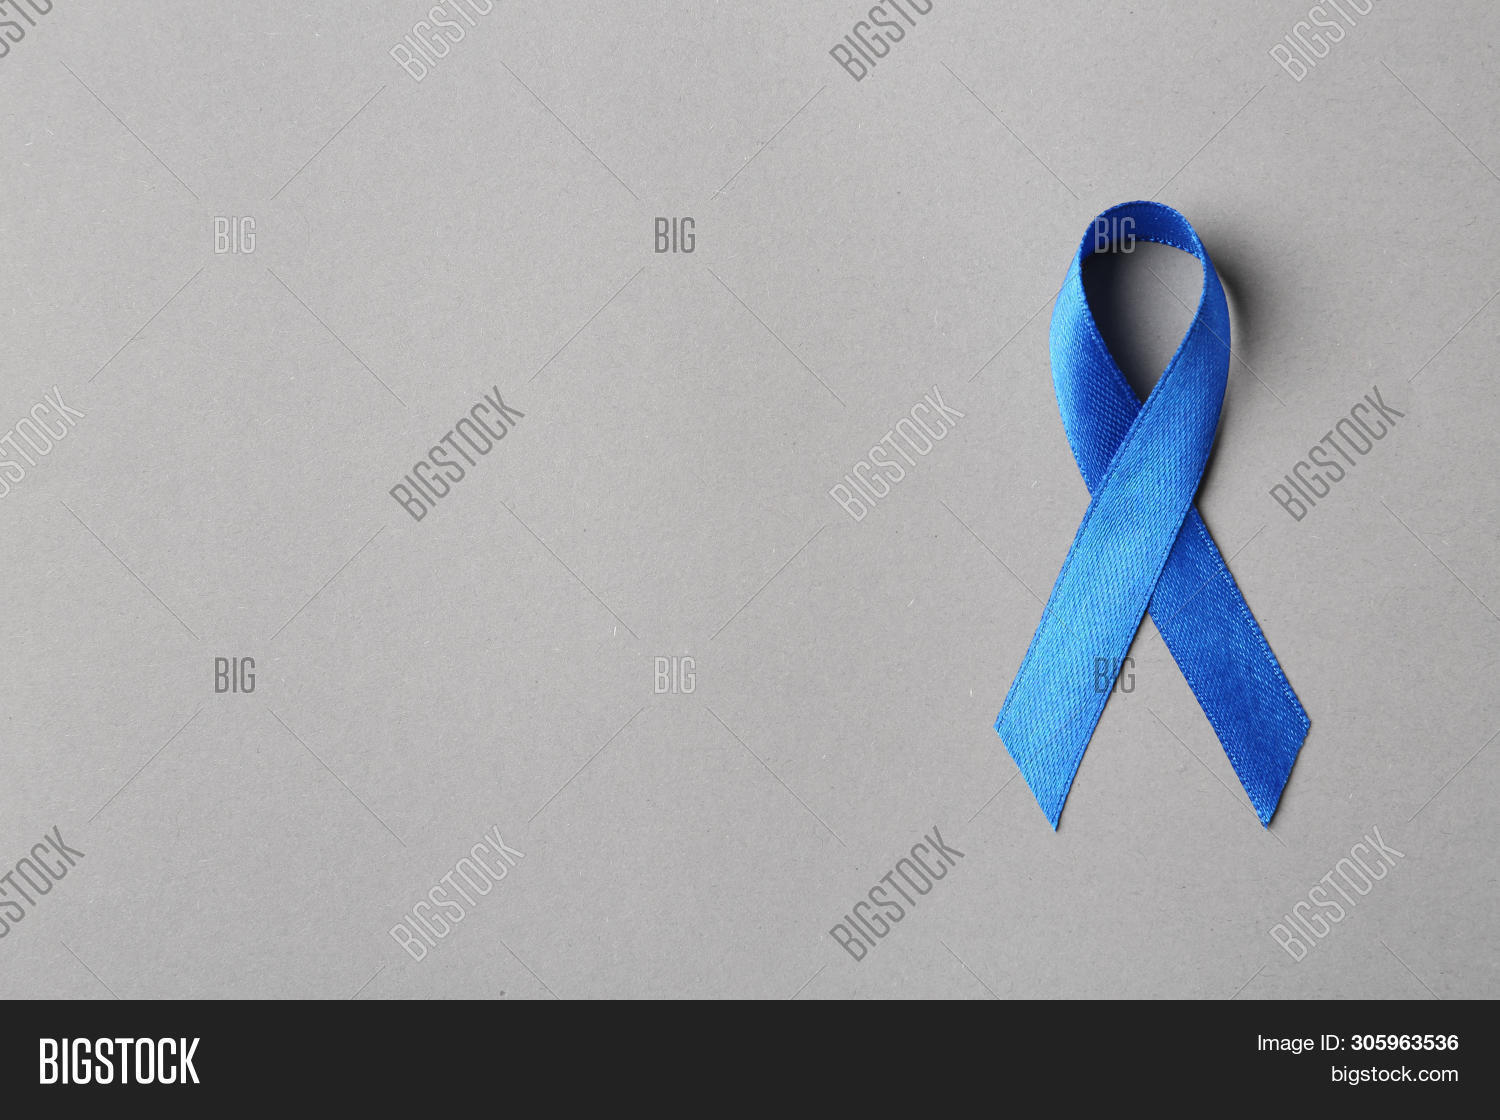 Blue Ribbon On Color Image Photo Free Trial Bigstock